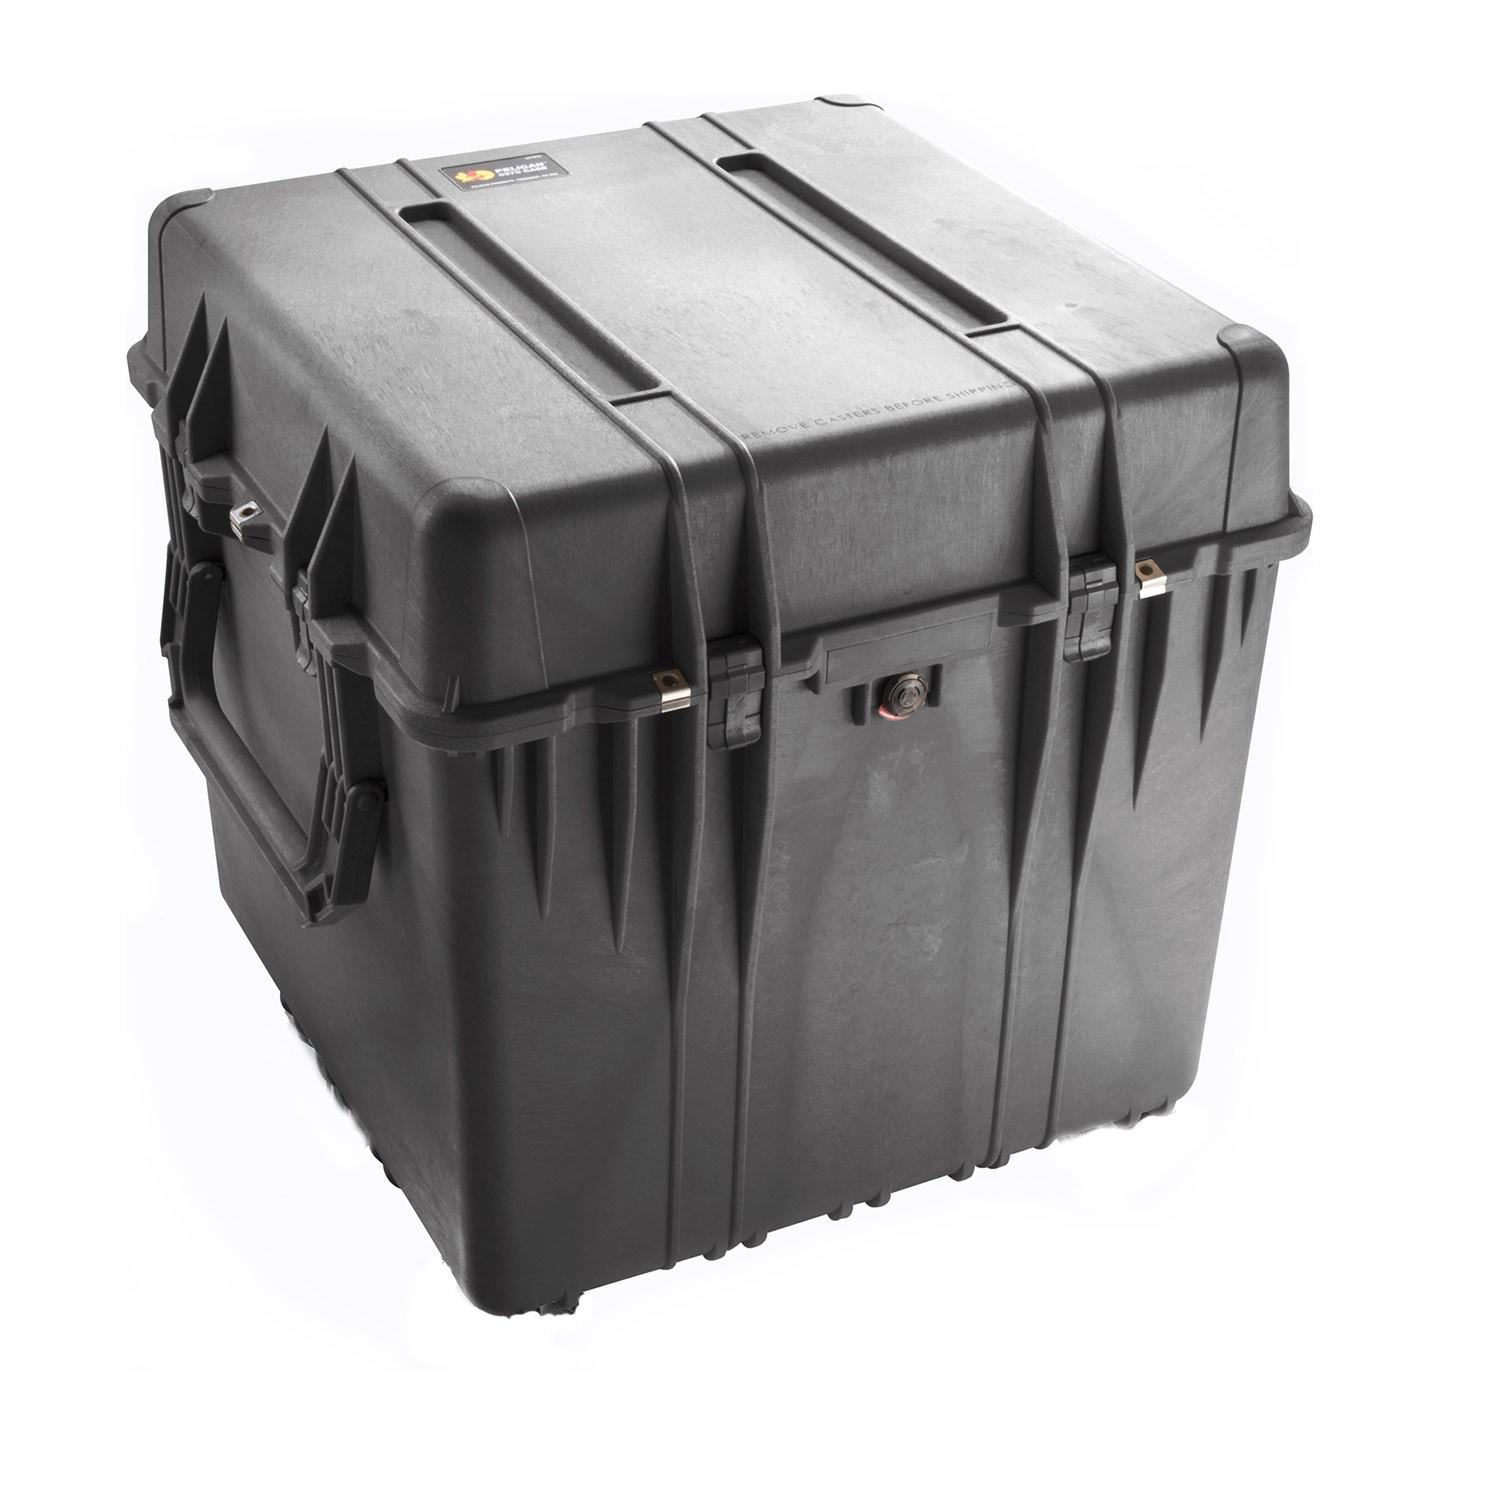 Peli 0370 Cube Case with Dividers